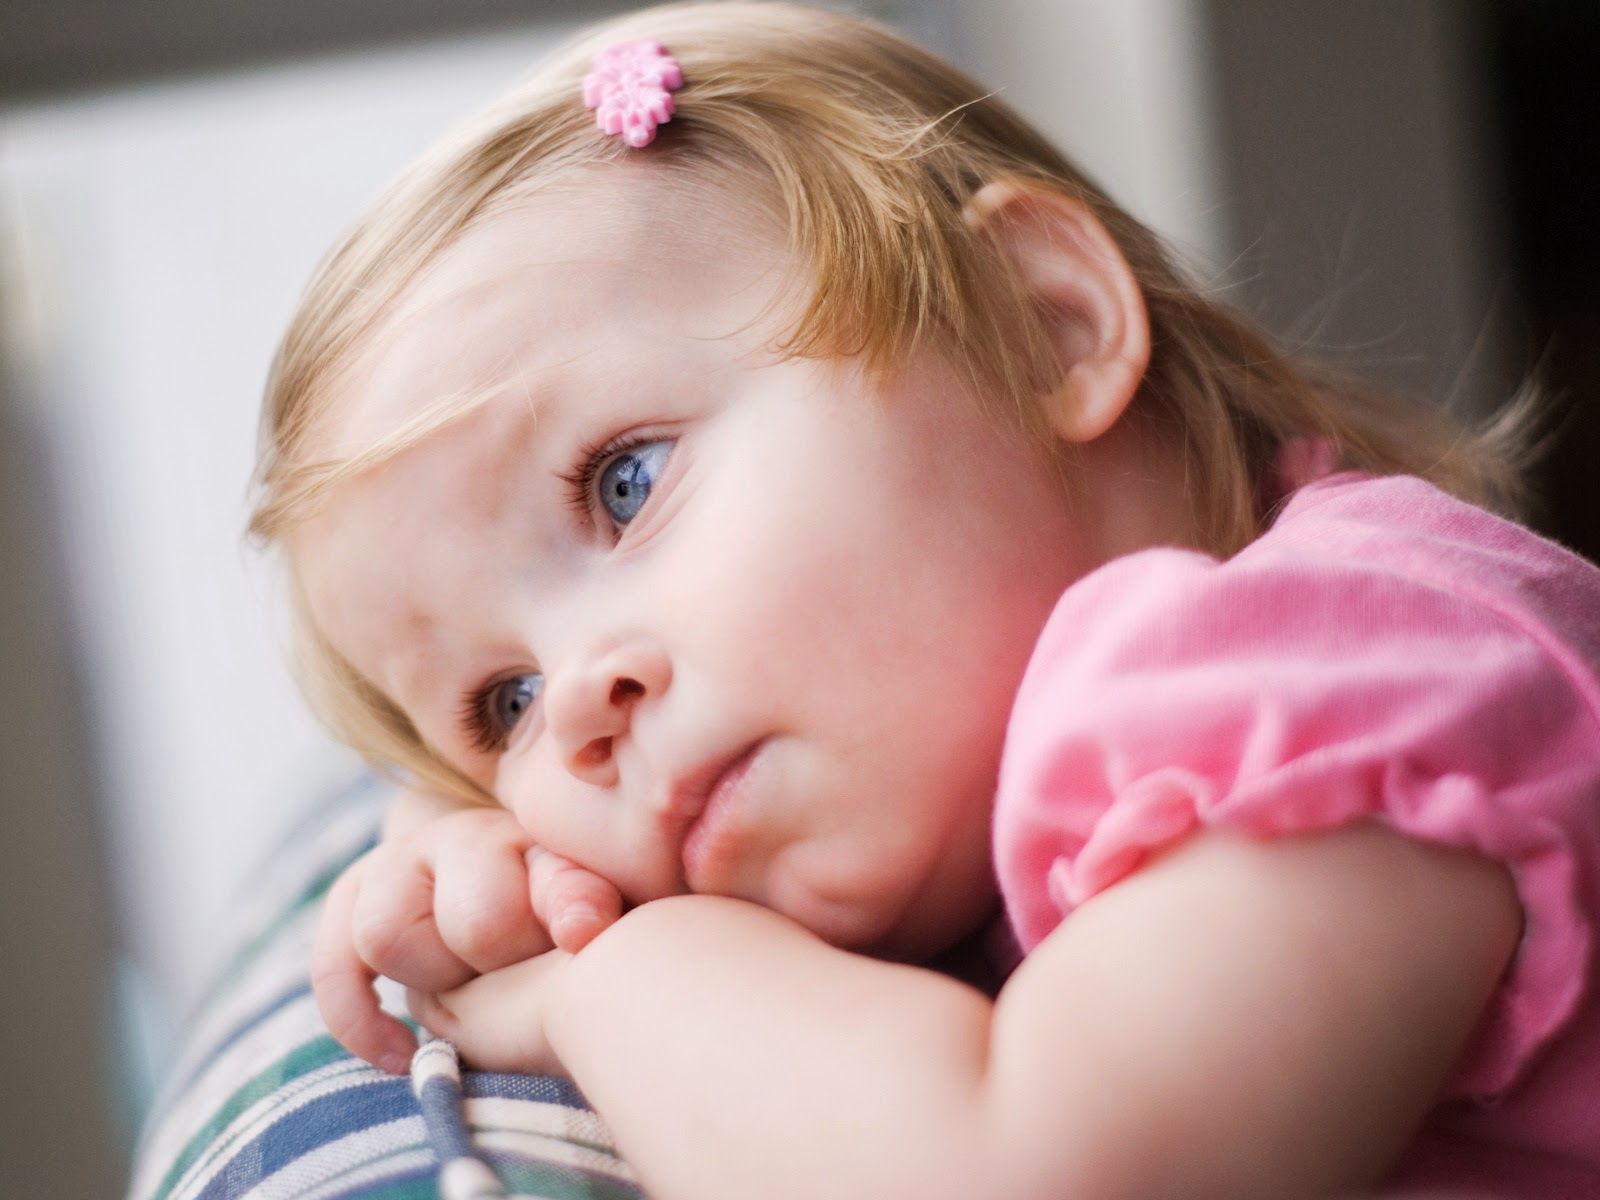 Cute Baby Wallpapers Latest: Cute Baby Wallpapers Free Download